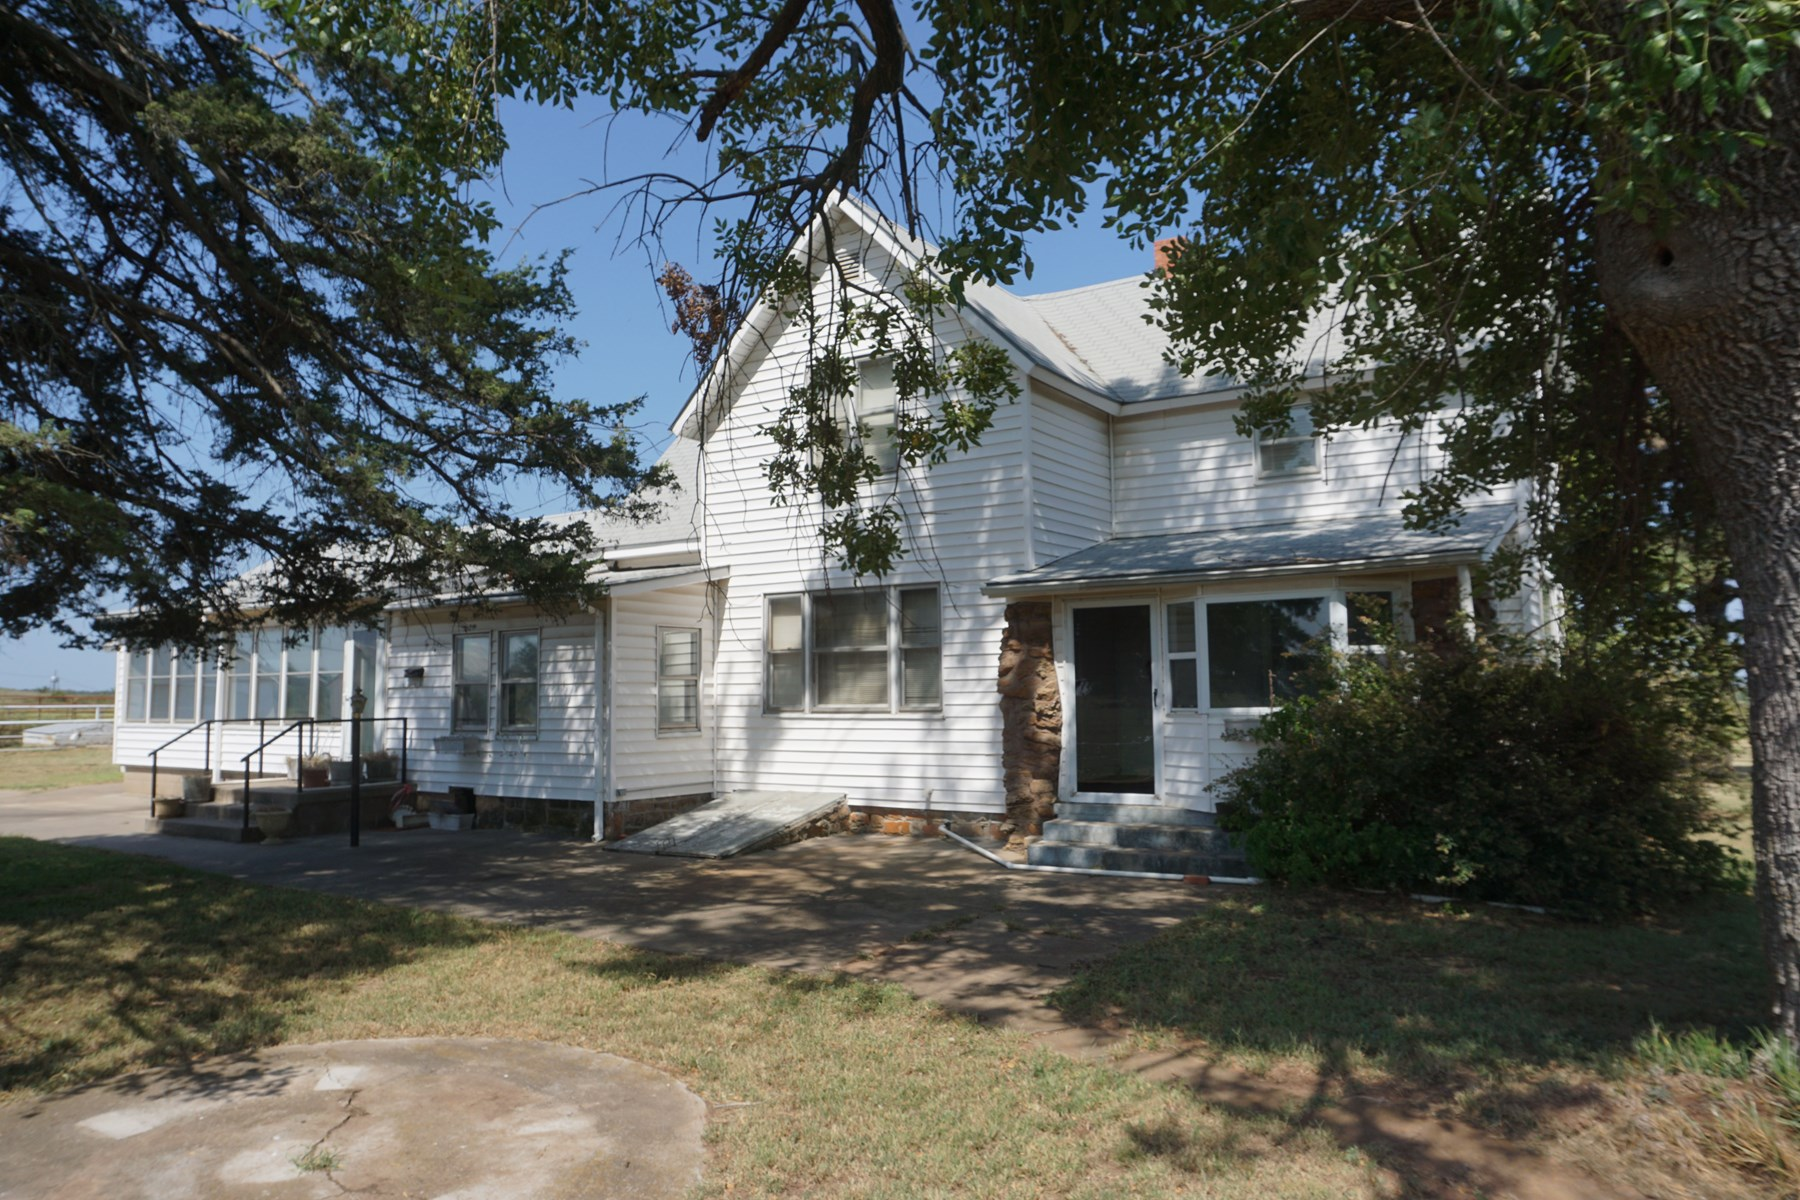 Pawnee, OK. No Reserve Auction Home on 3 acres +/- Oct 3